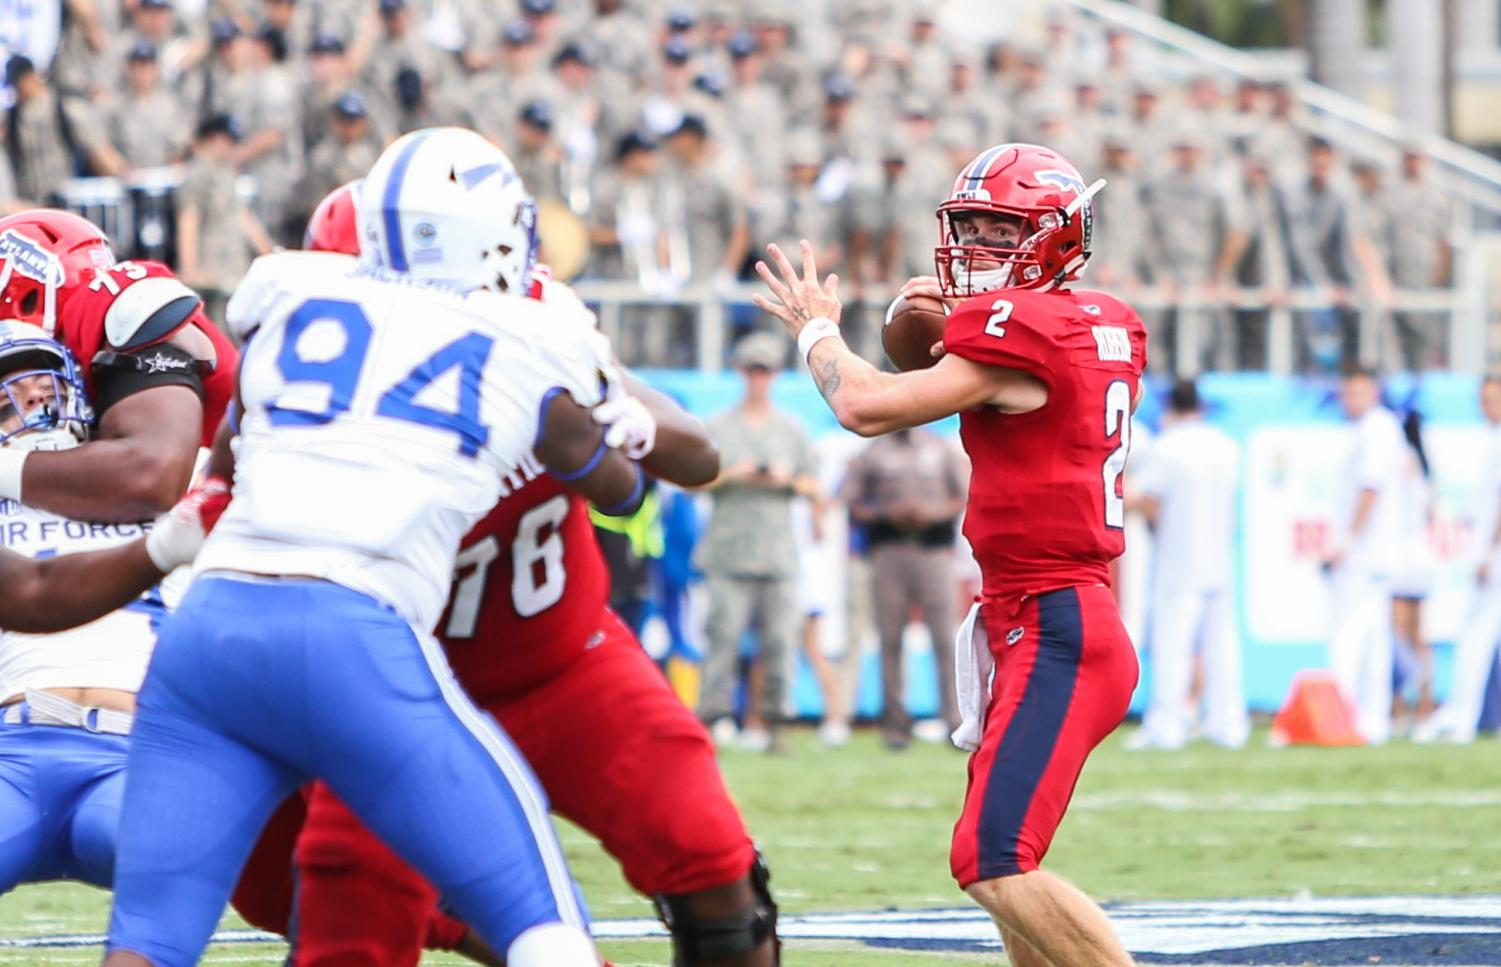 FAU redshirt freshman quarterback Chris Robison (2) decides where to throw the football before being tackled by the Air Force defense. Photo by Alexander Rodriguez